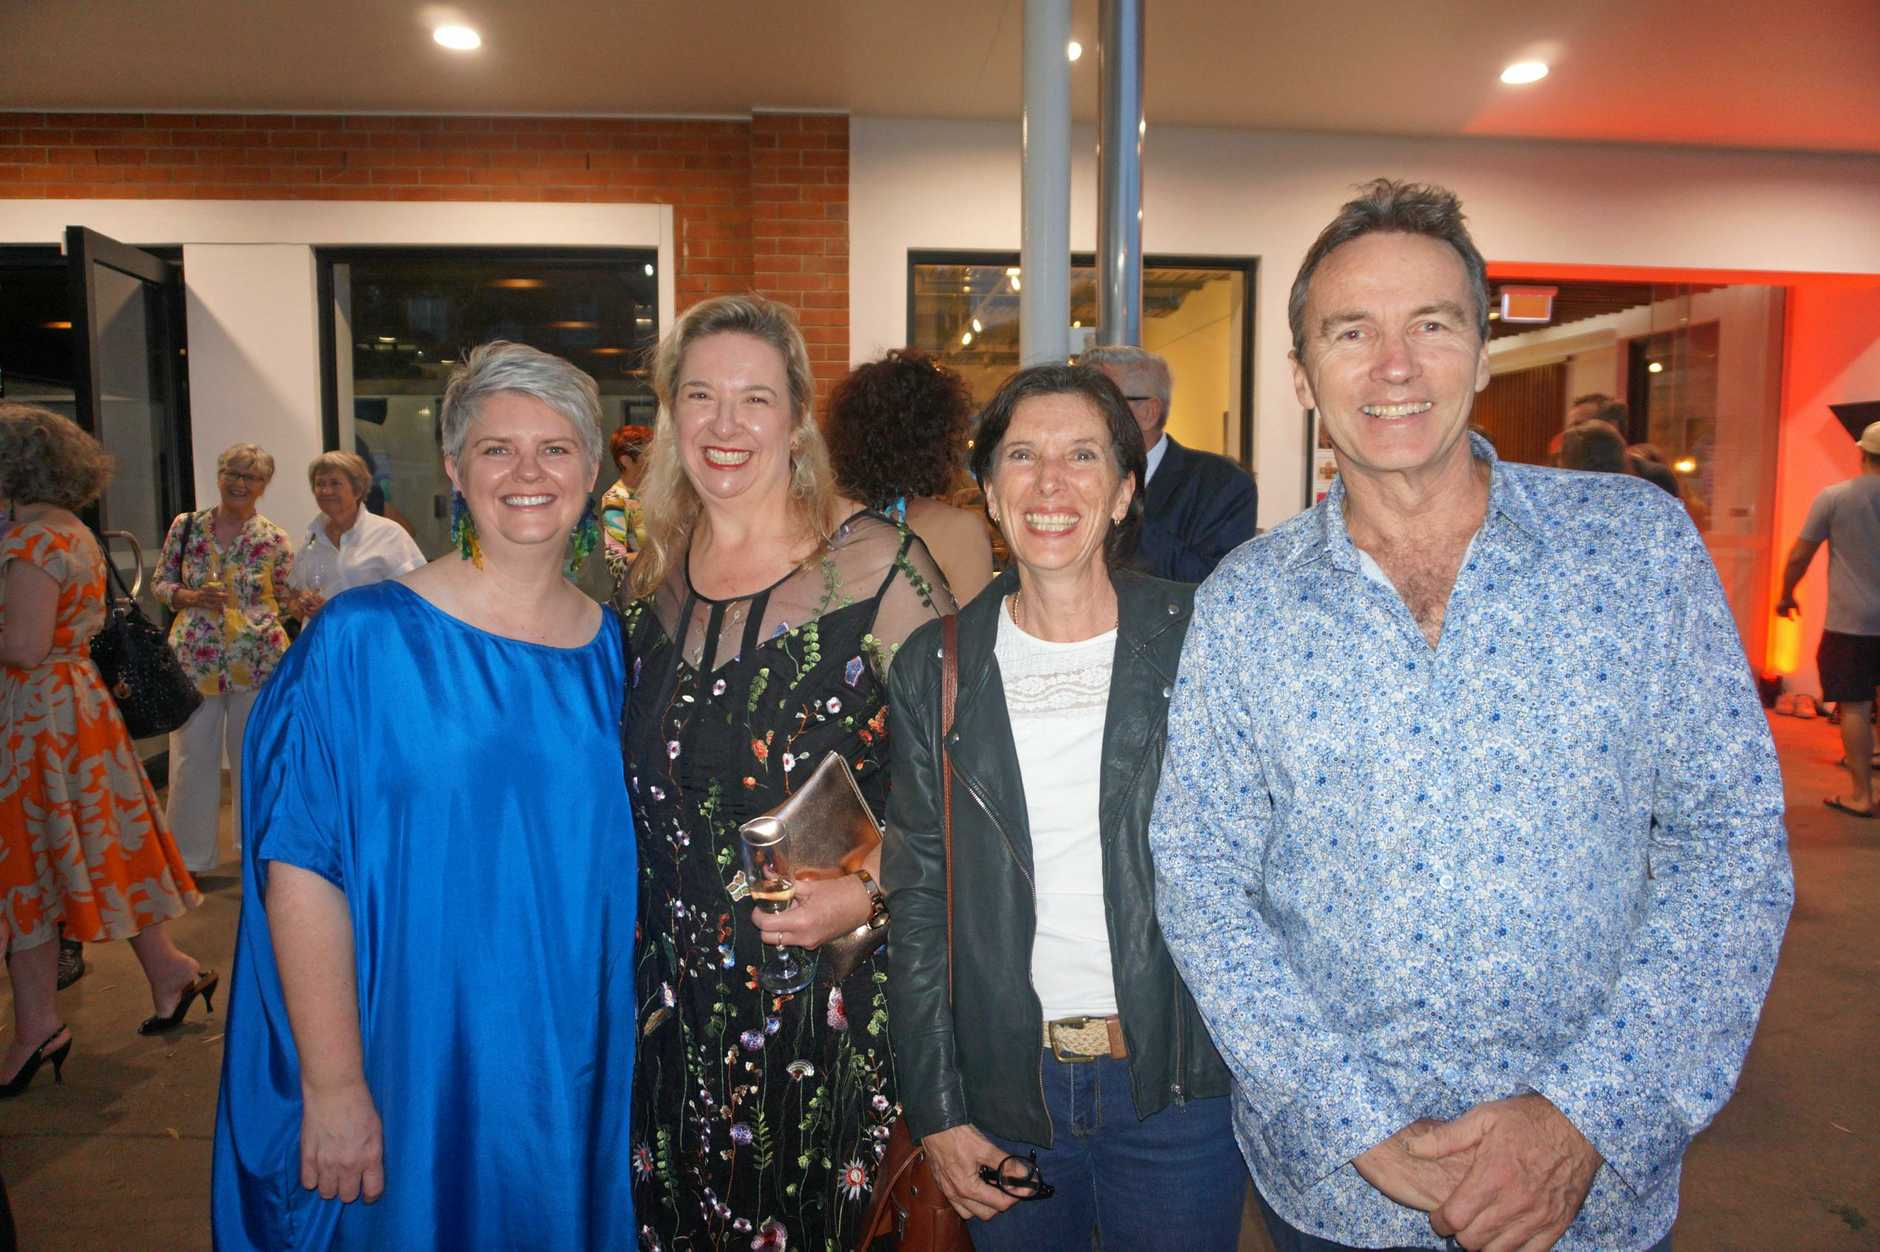 Gold coast City Gallery Director Tracy Cooper, Tweed Regional Art Gallery and Margaret Olley Art Centre director Susi Muddiman, Amanda Bromfield of Lennox Head and Andy Davis of Lennox Head.